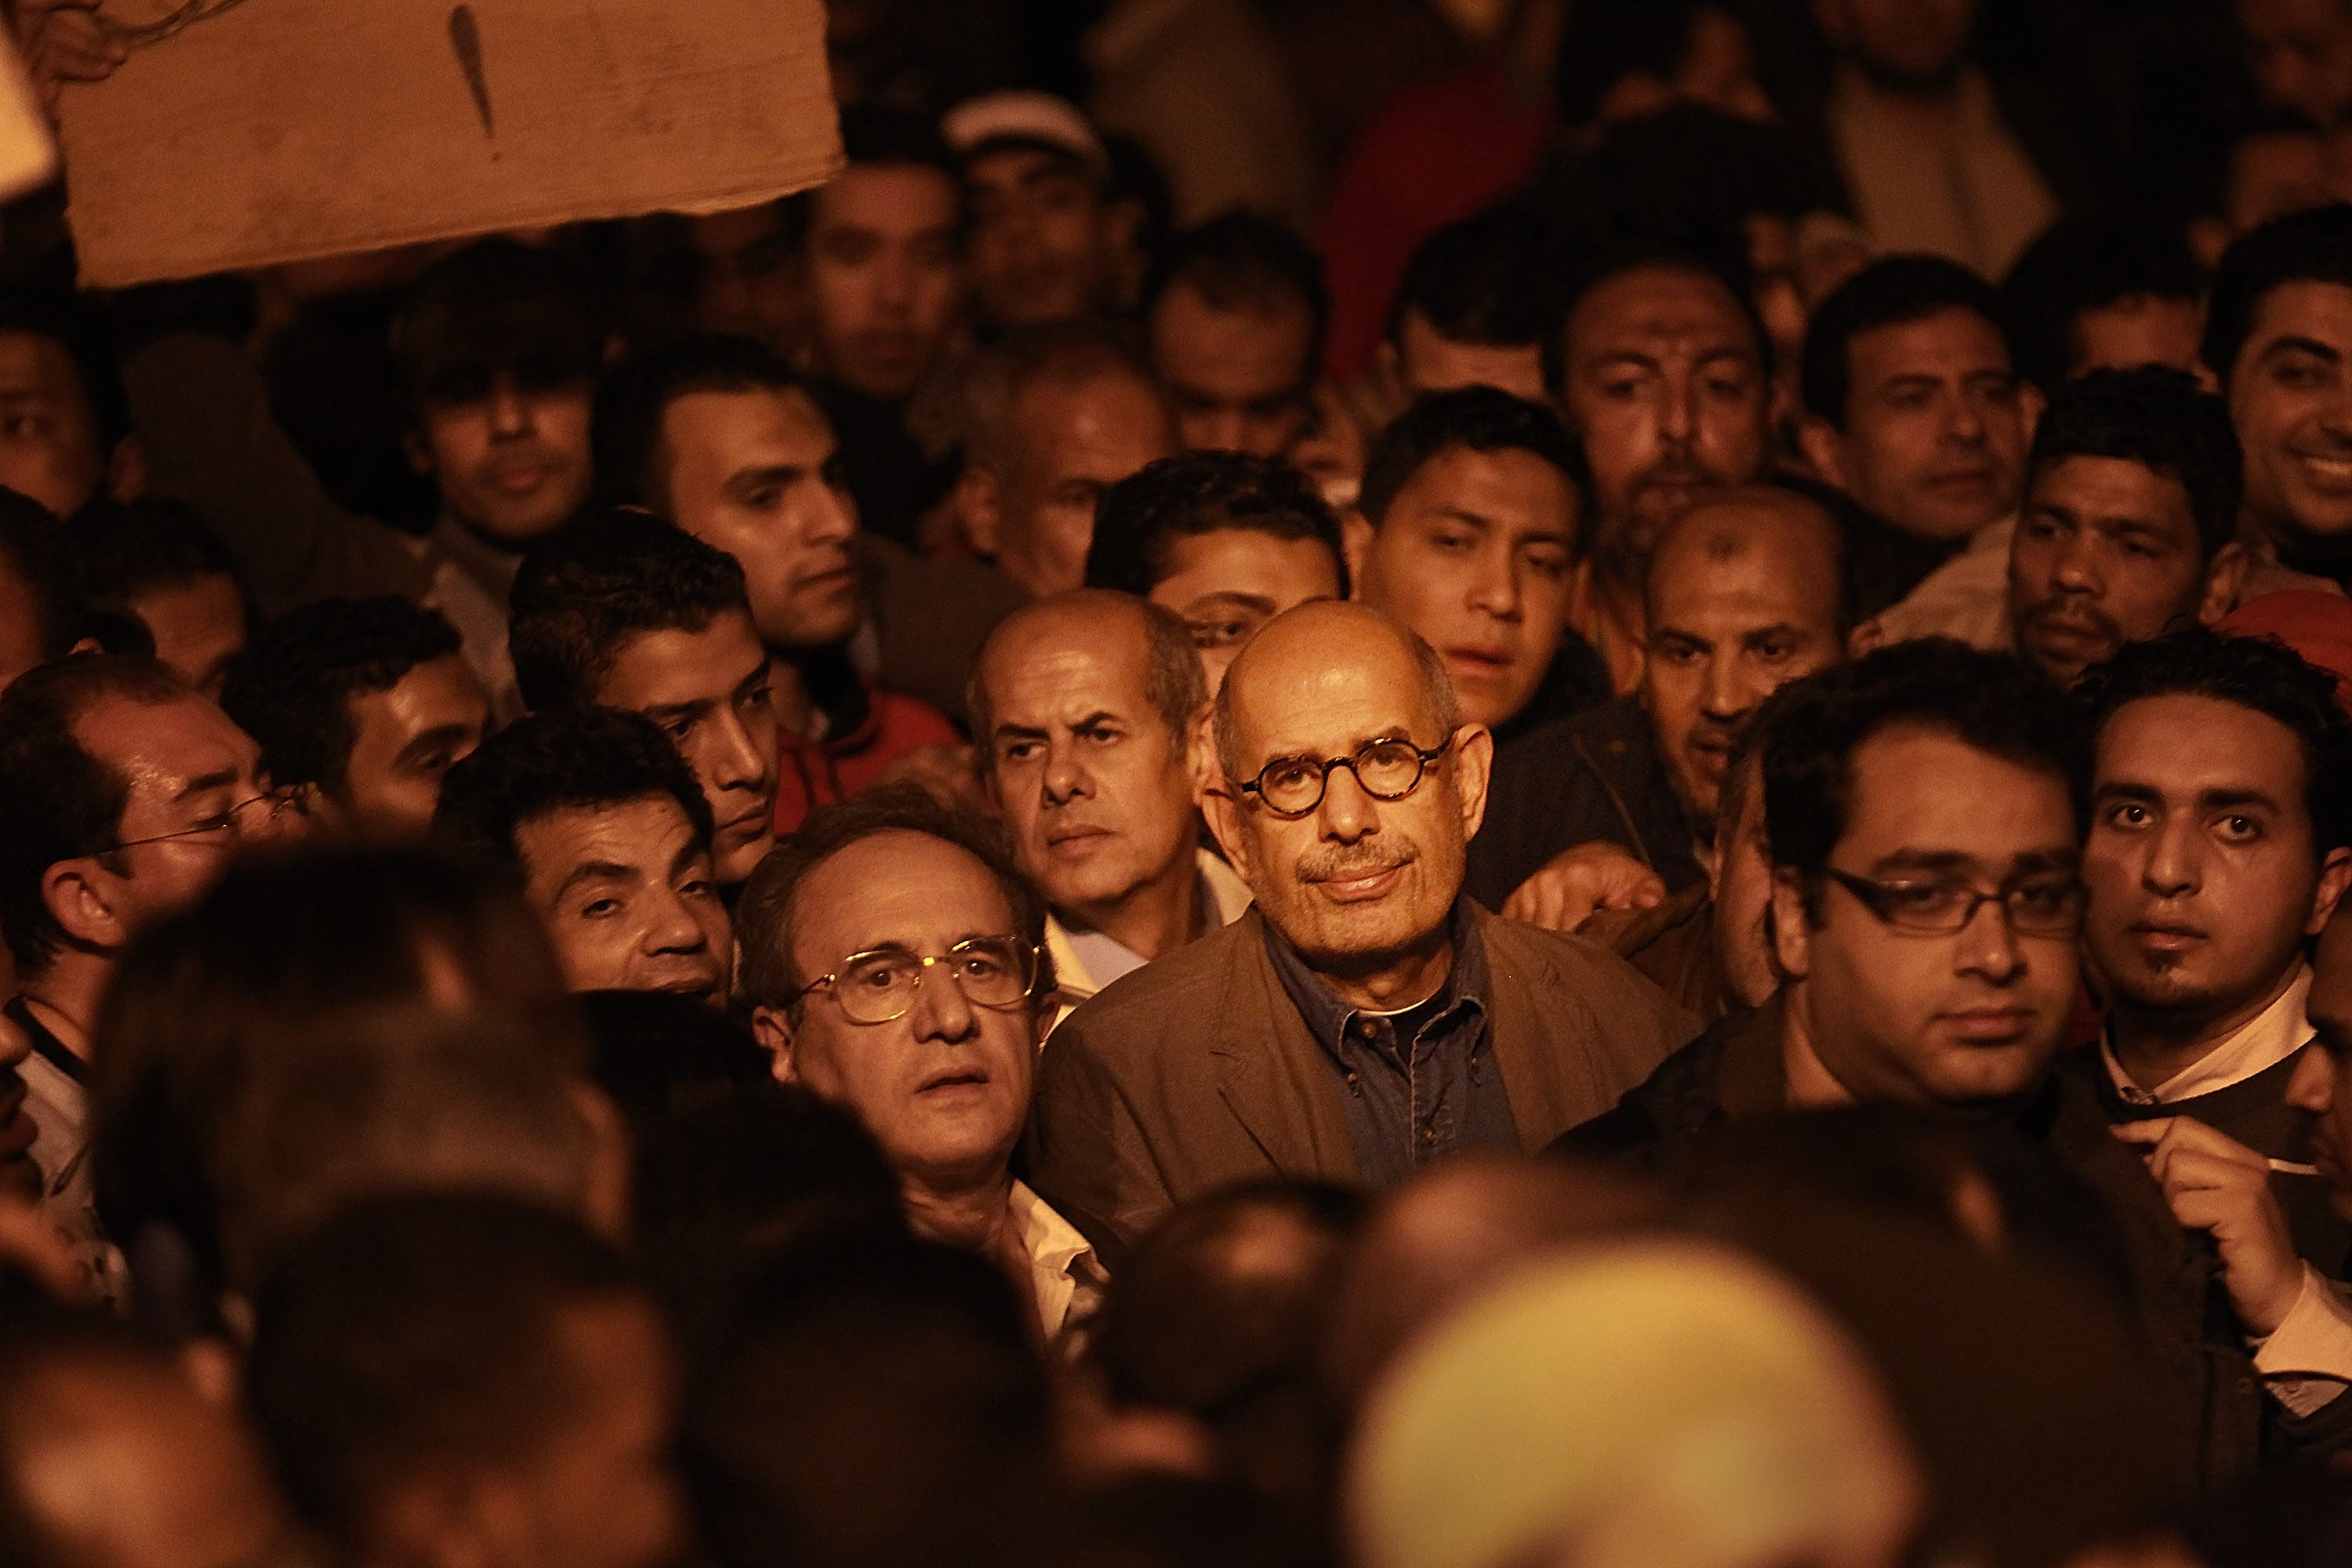 All eyes are on Mohammad Al Baradei as his decision could prove to be a crucial turning point for Egypt's political future.